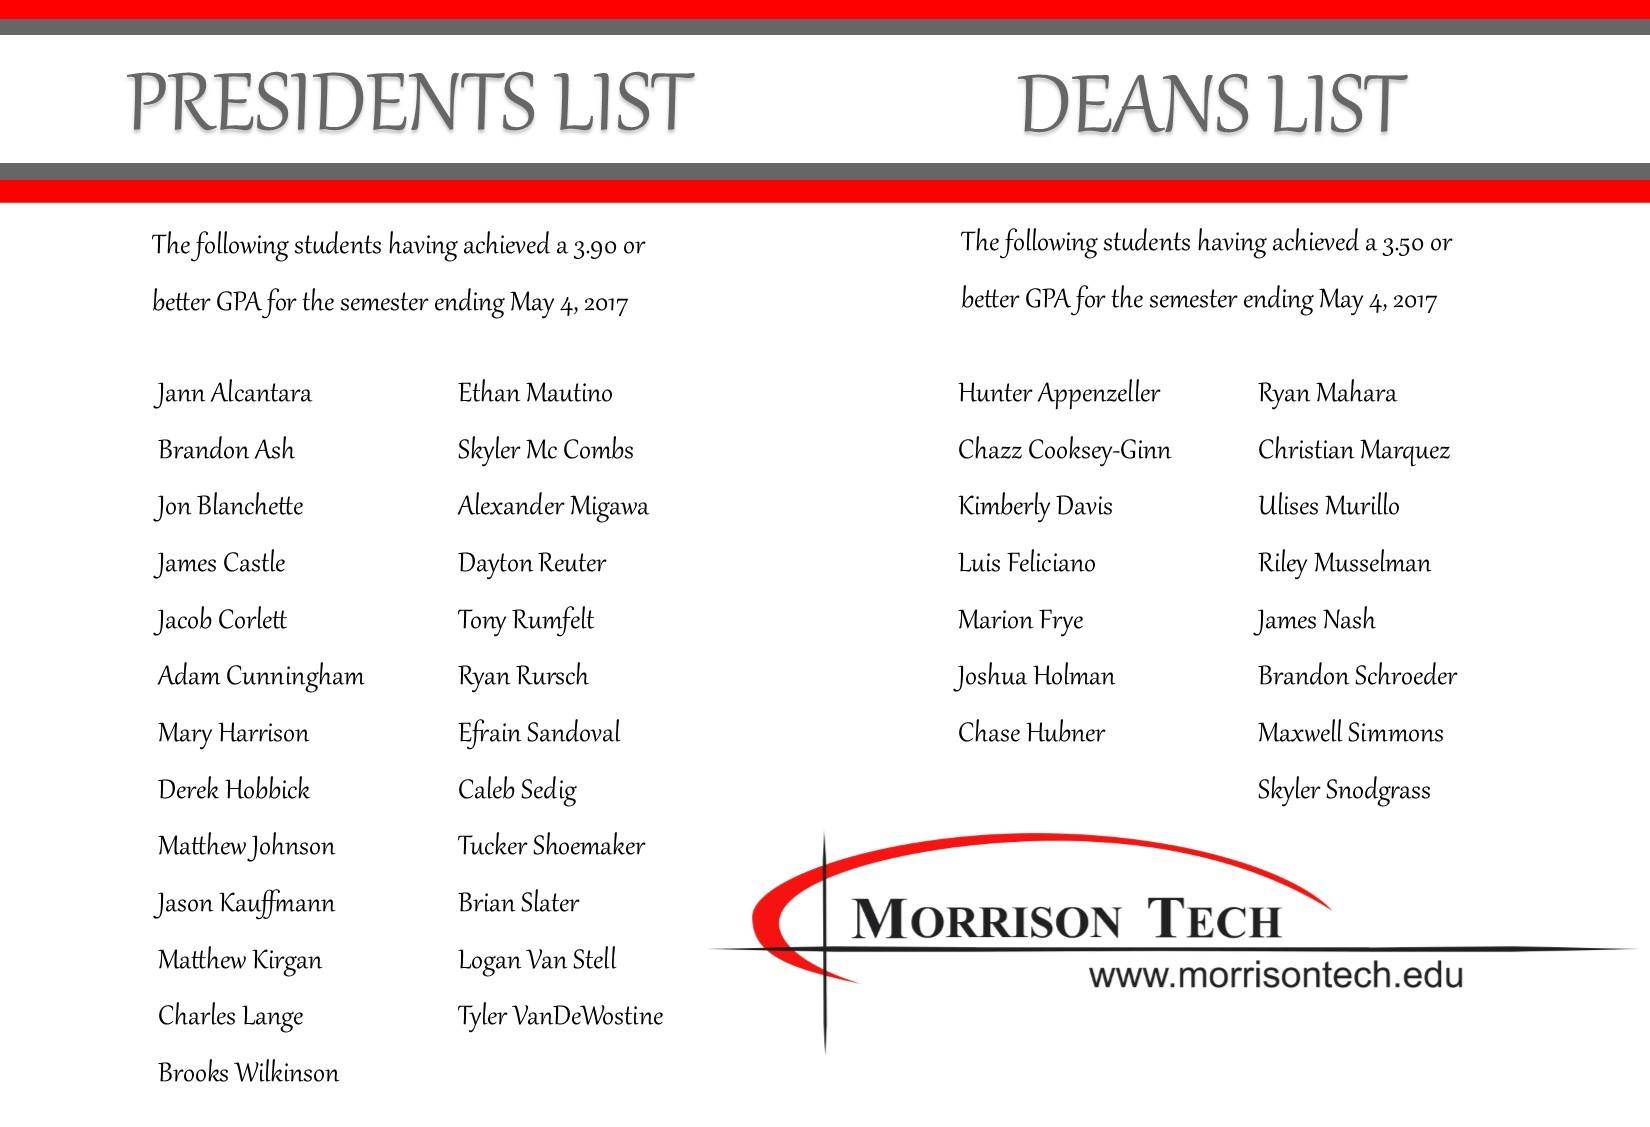 Spring 2017 Presidents List and Deans List